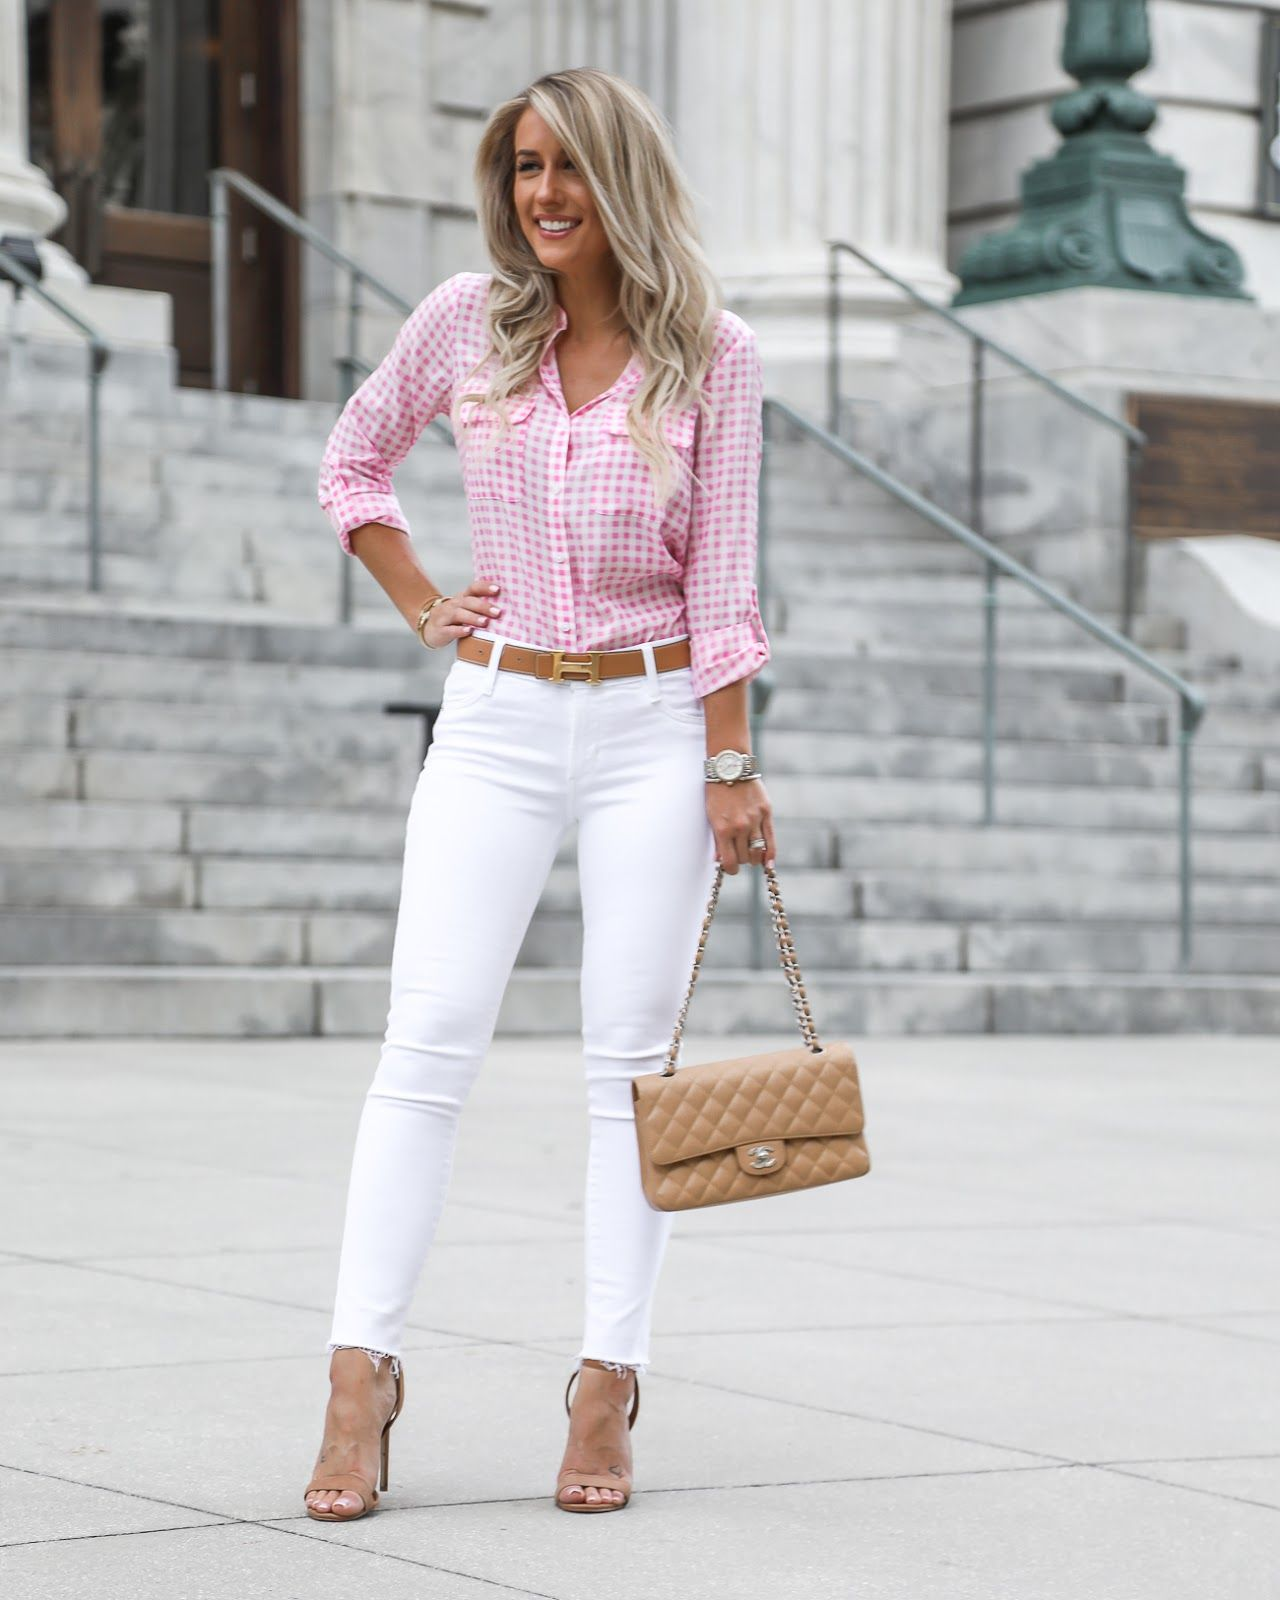 Pink White Gingham Styled Adventures Pink Shirt Outfit Gingham Shirt Outfit Gingham Fashion